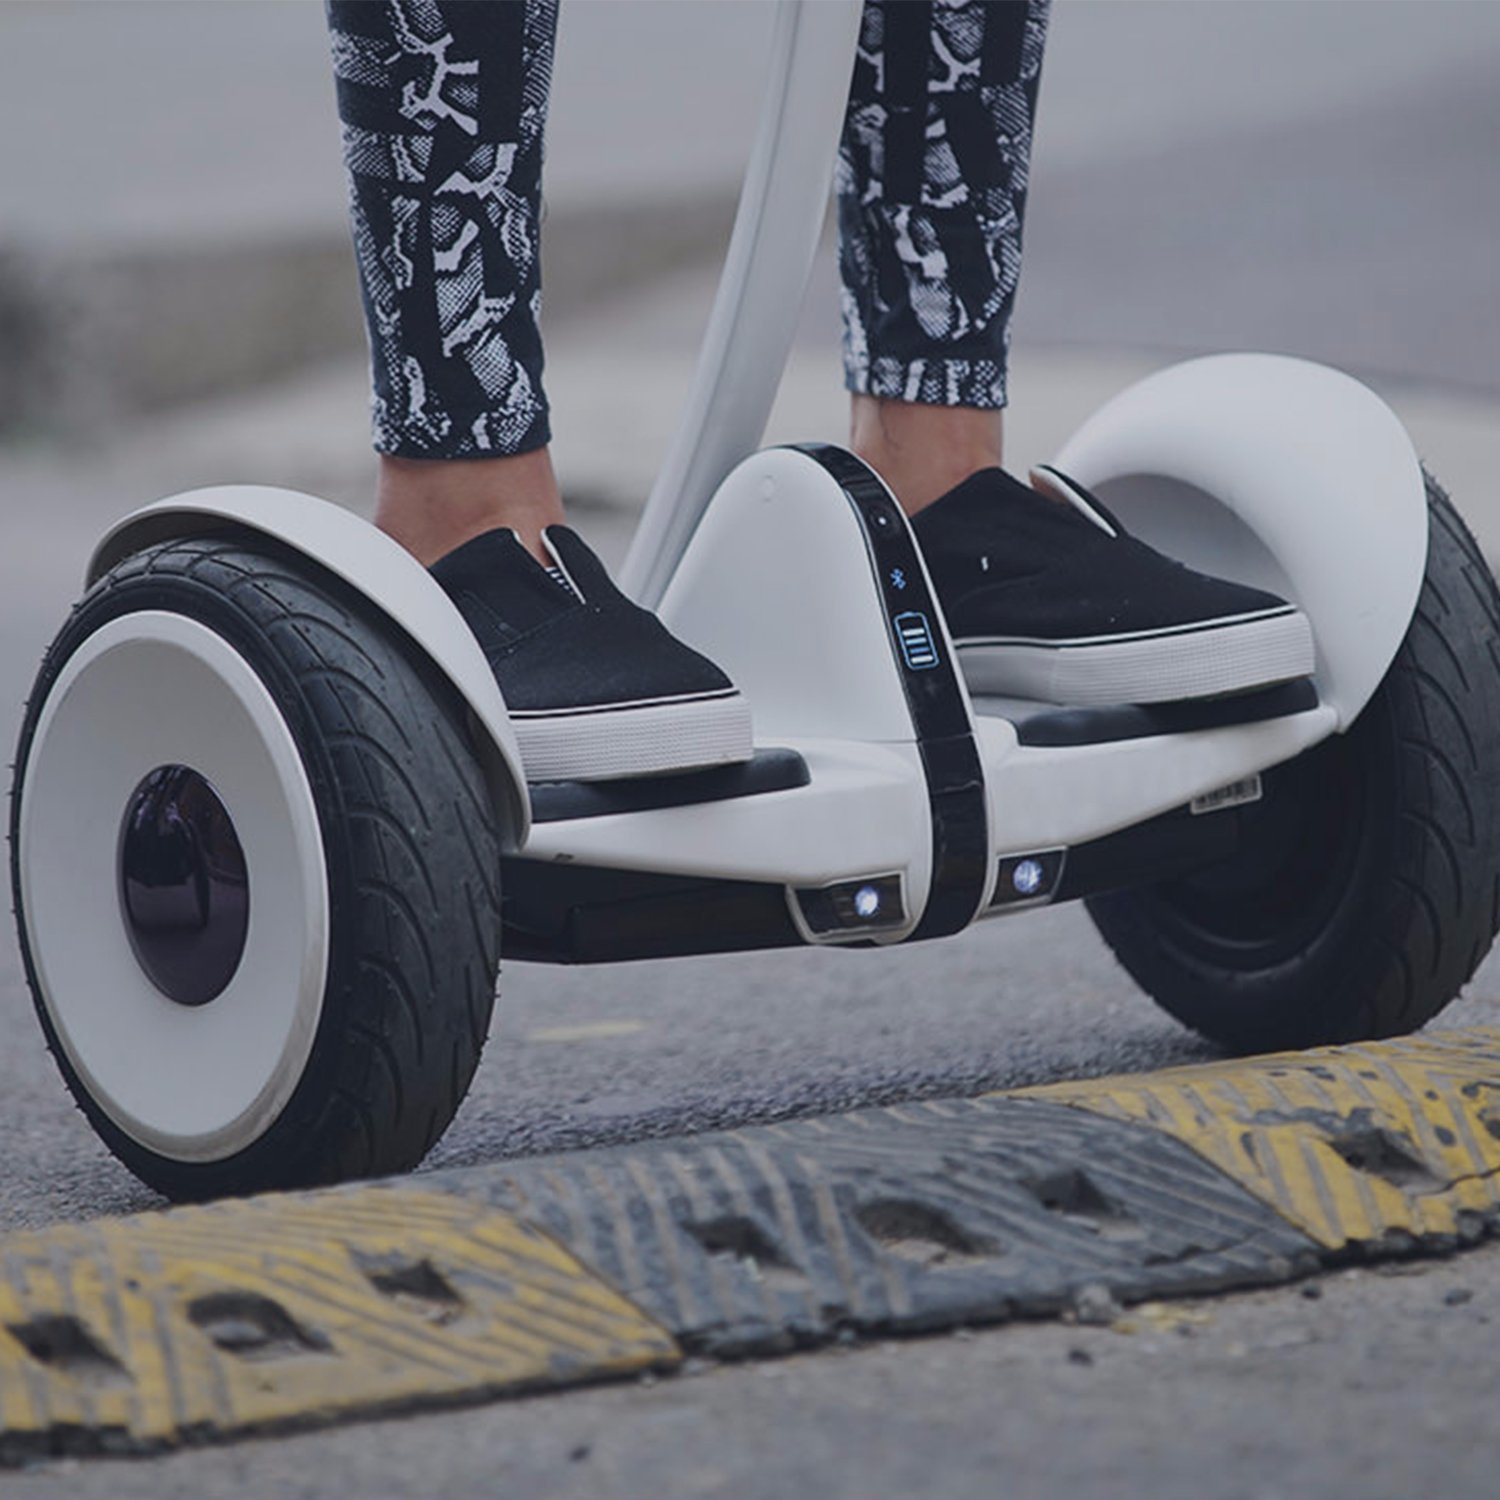 Two Wheel Electric Scooter Manufacturer